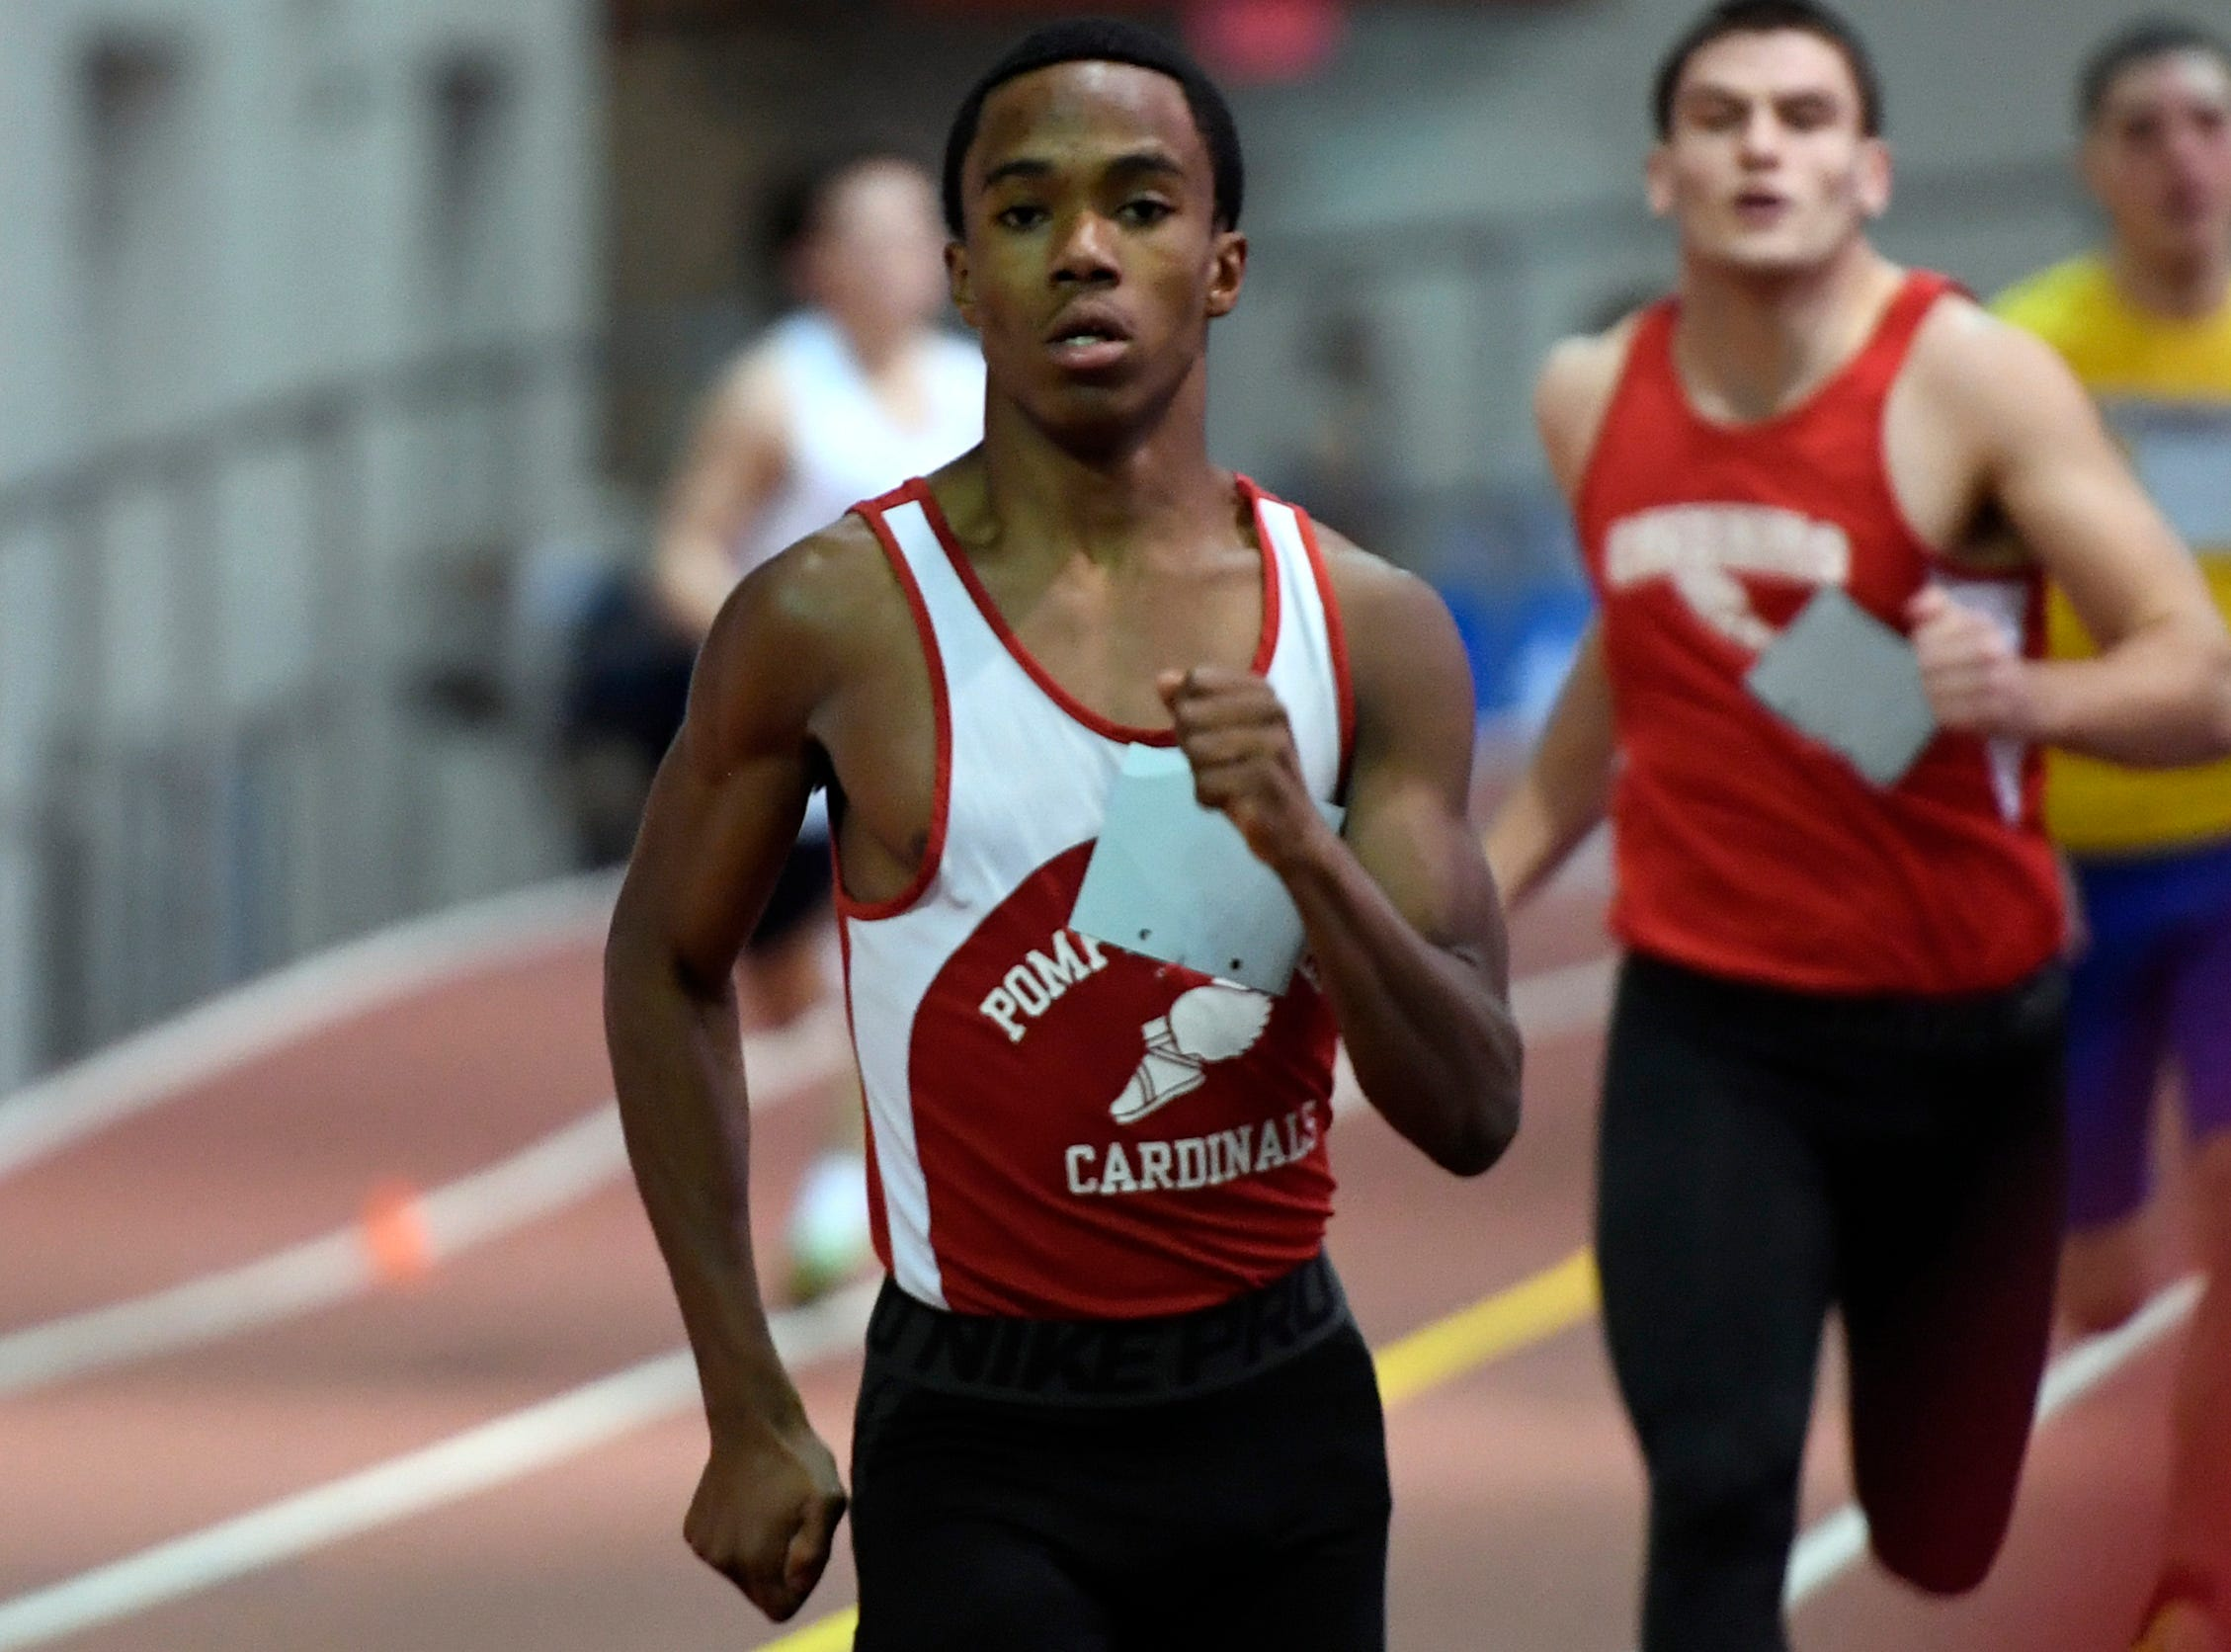 Nathan Armstrong of Pompton Lakes placed second in the 3200-meter race during the NJIC track meet at the Armory Track on Monday, Jan. 7, 2019, in New York.